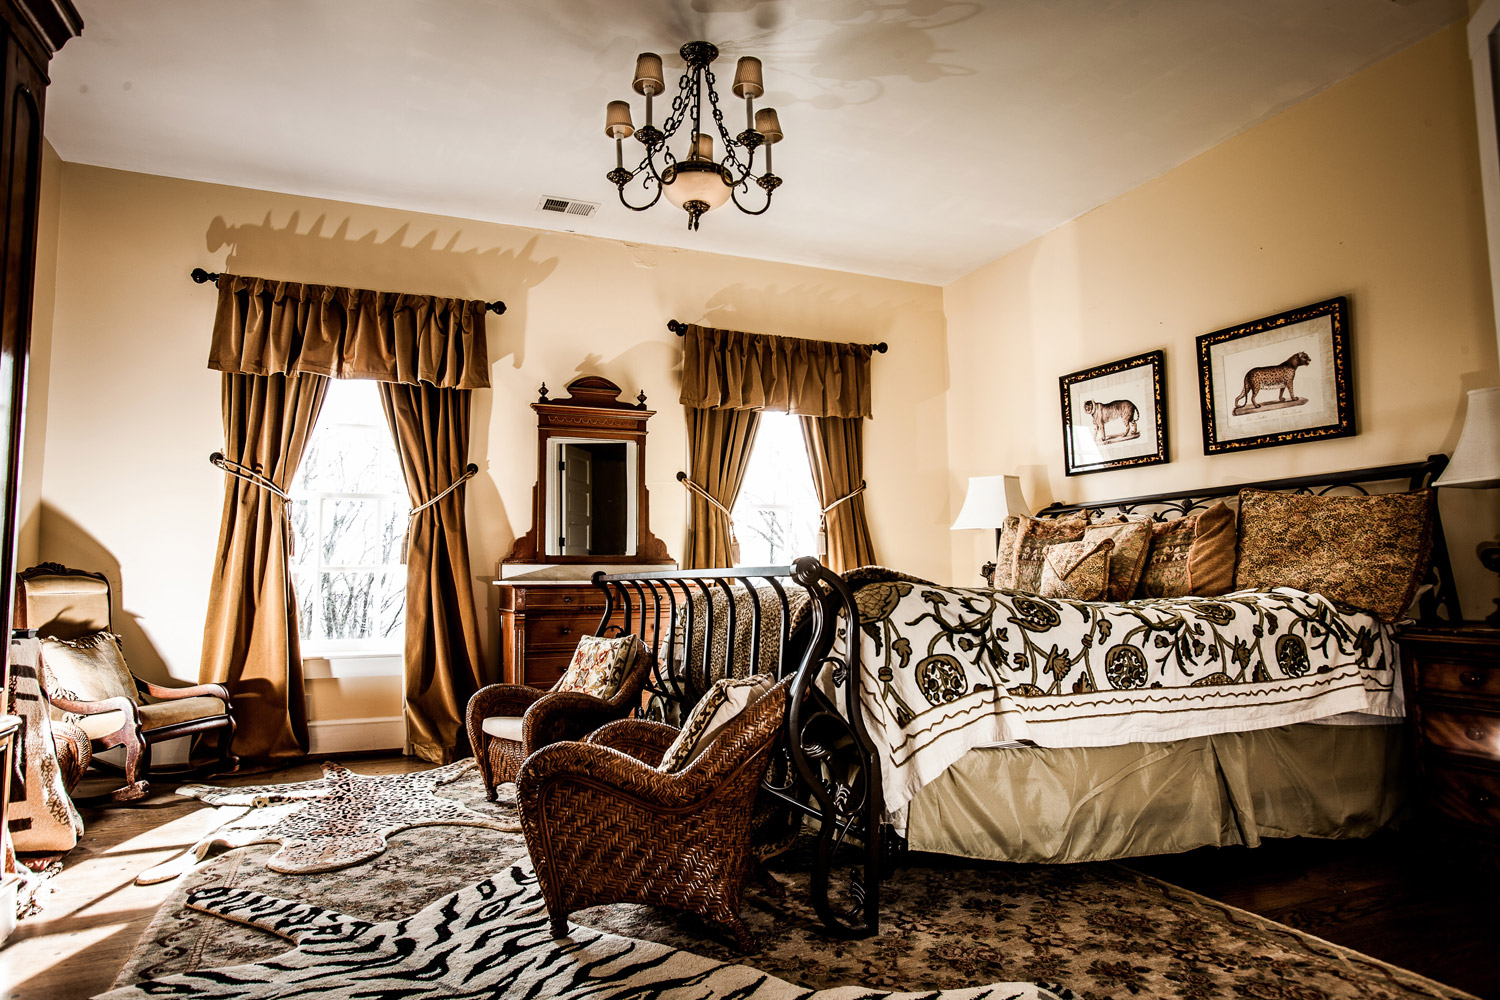 The Safari Room inside the estate is decorated in zebra and cheeta prints and boasts a safari theme throughout the entire room.